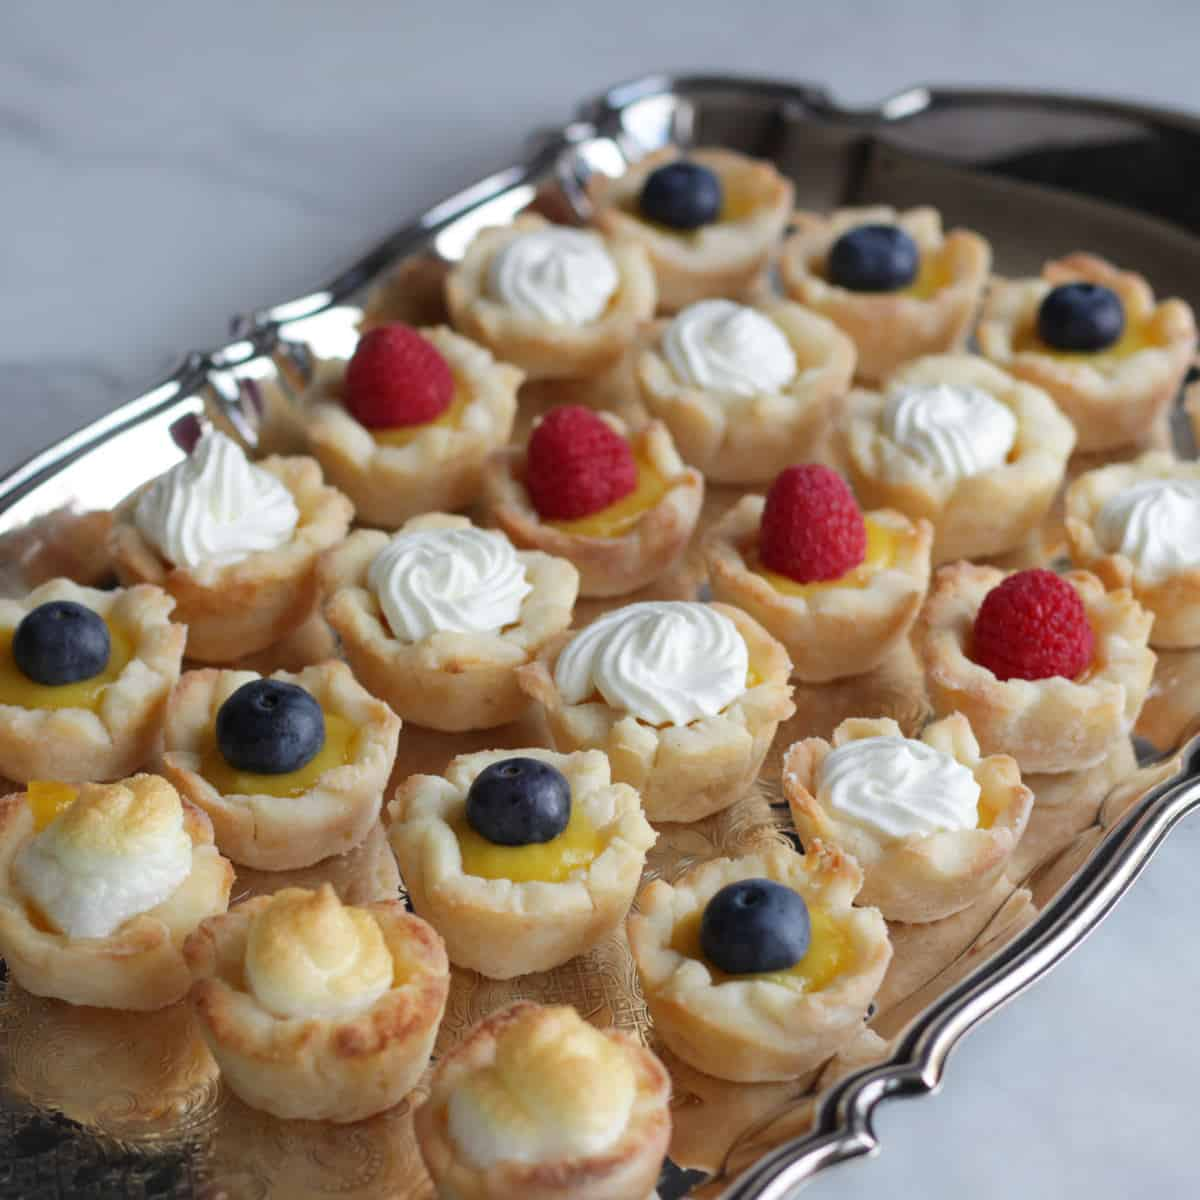 rows of mini lemon tarts garnished with berries, whipped cream, and meringue lined up in rows on silver tray